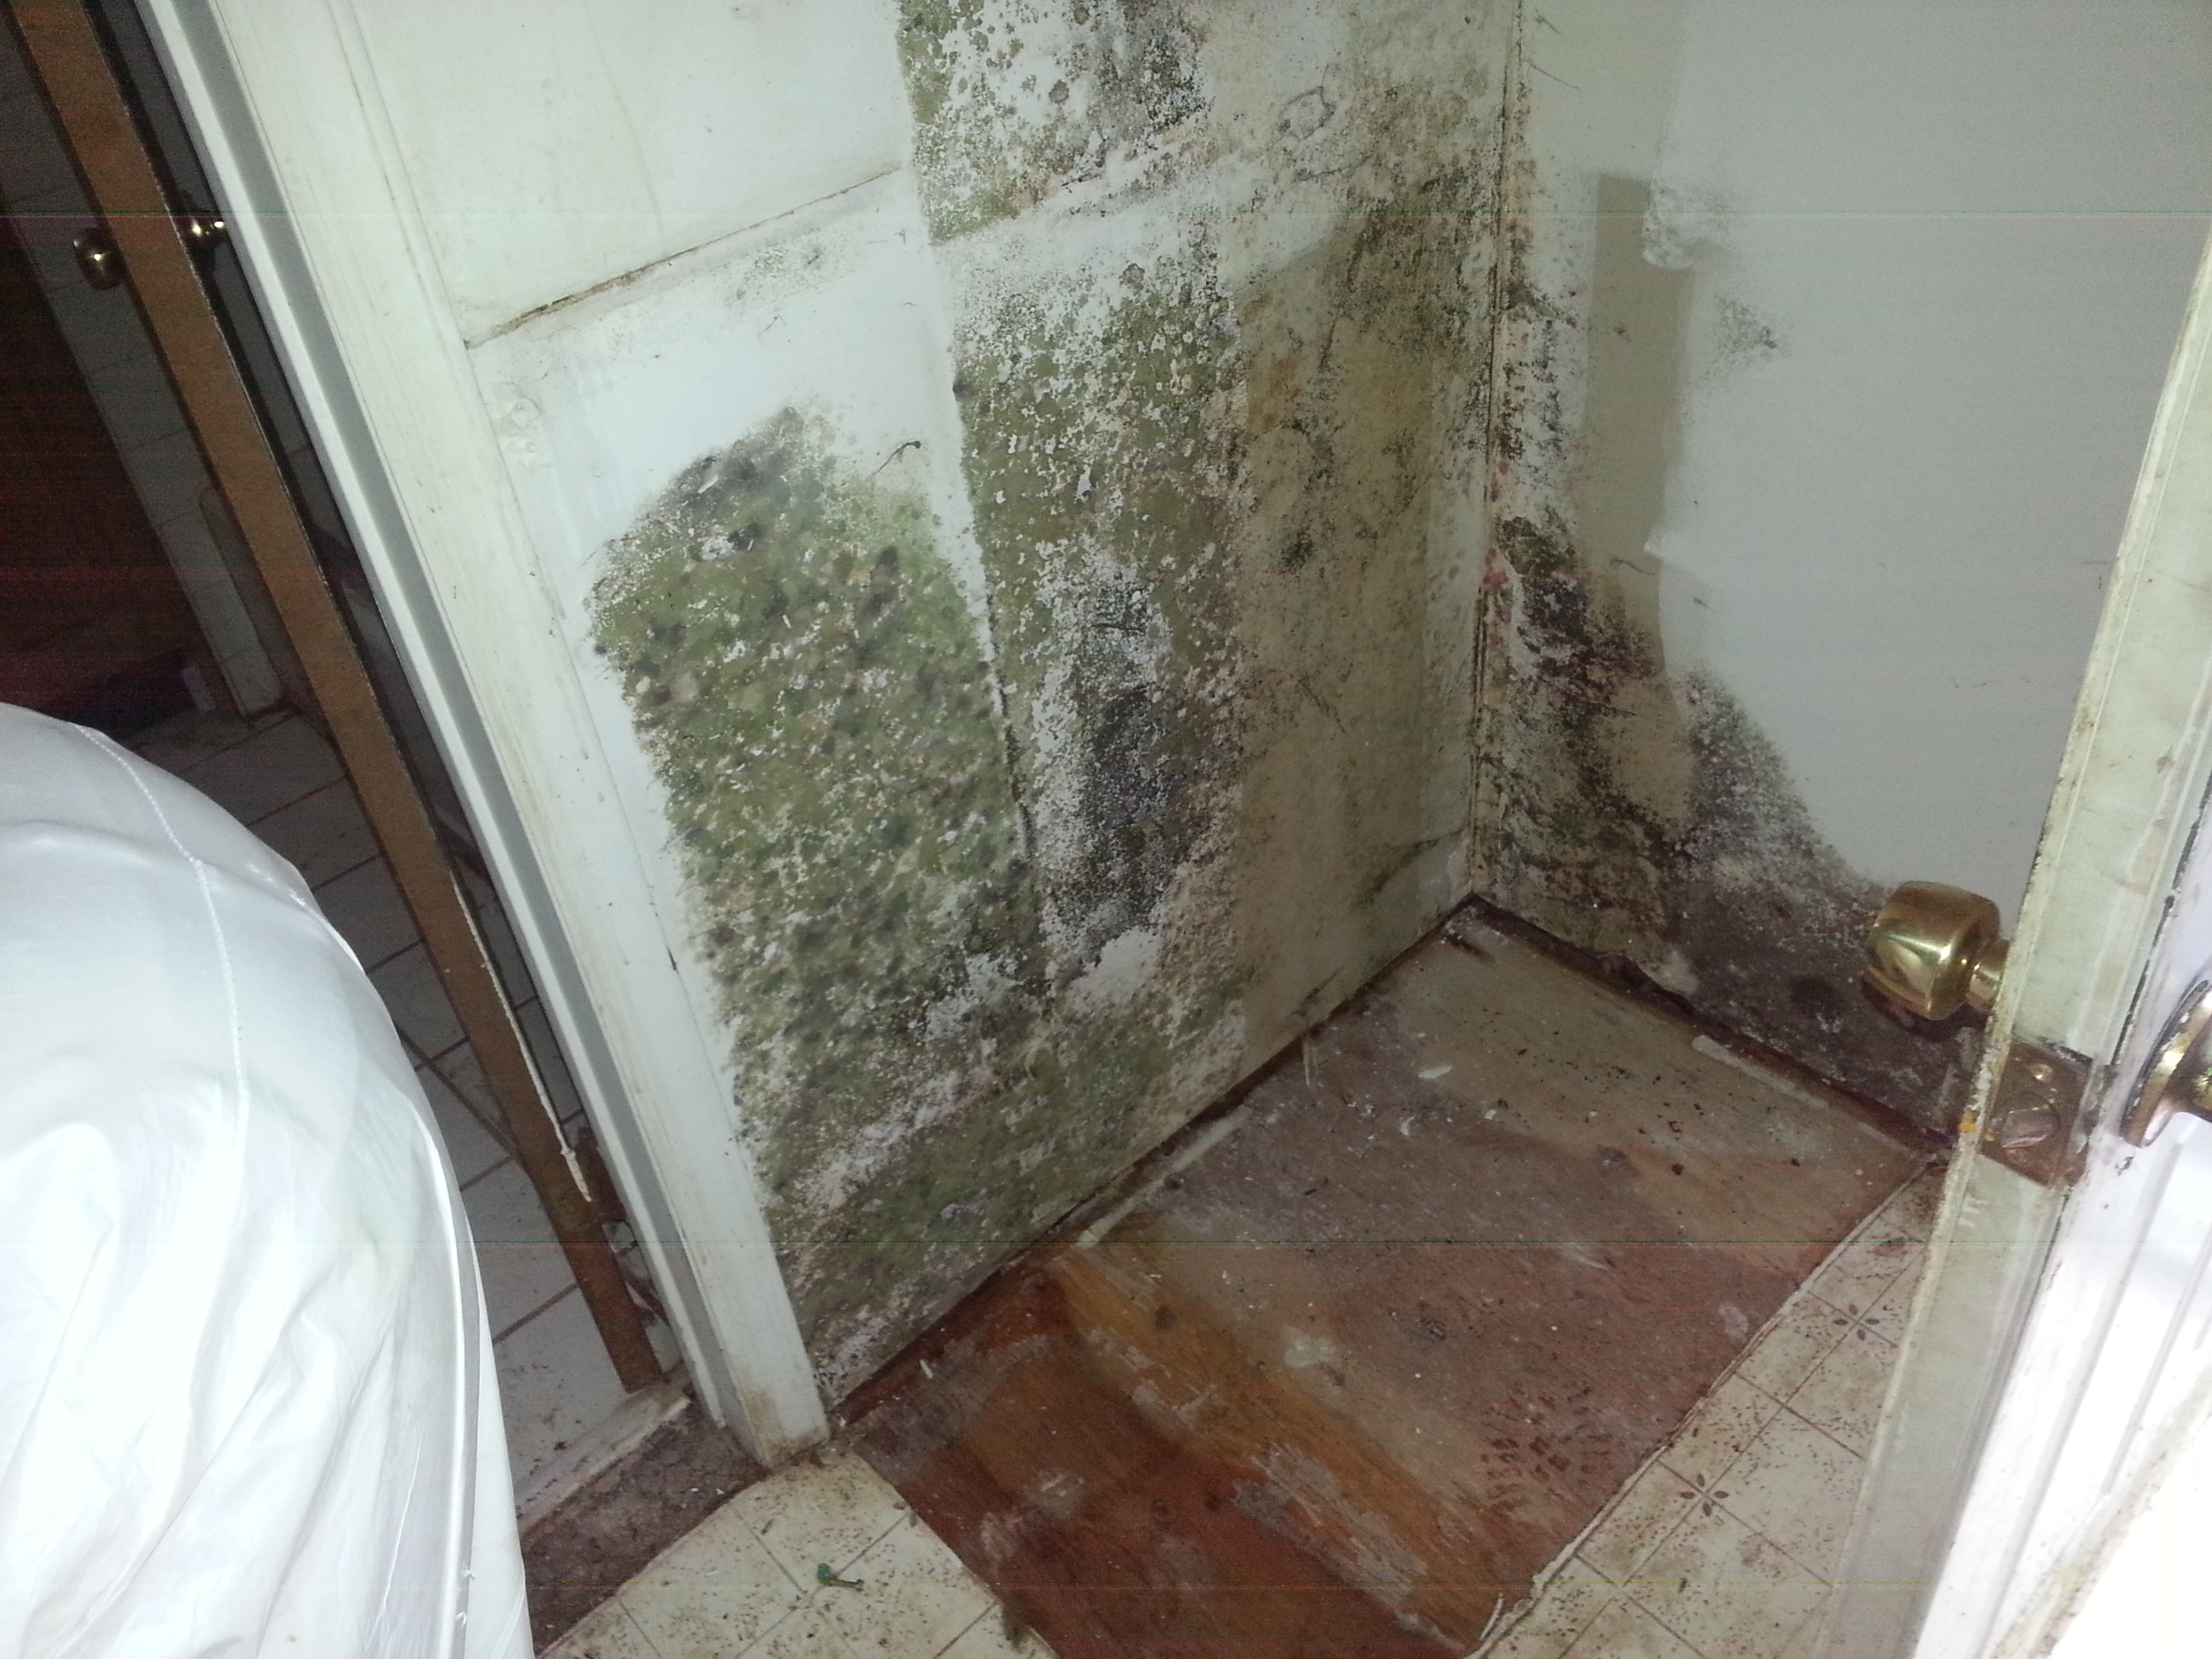 Mold. This closet needs mold remediation Services by Groundswell Contracting